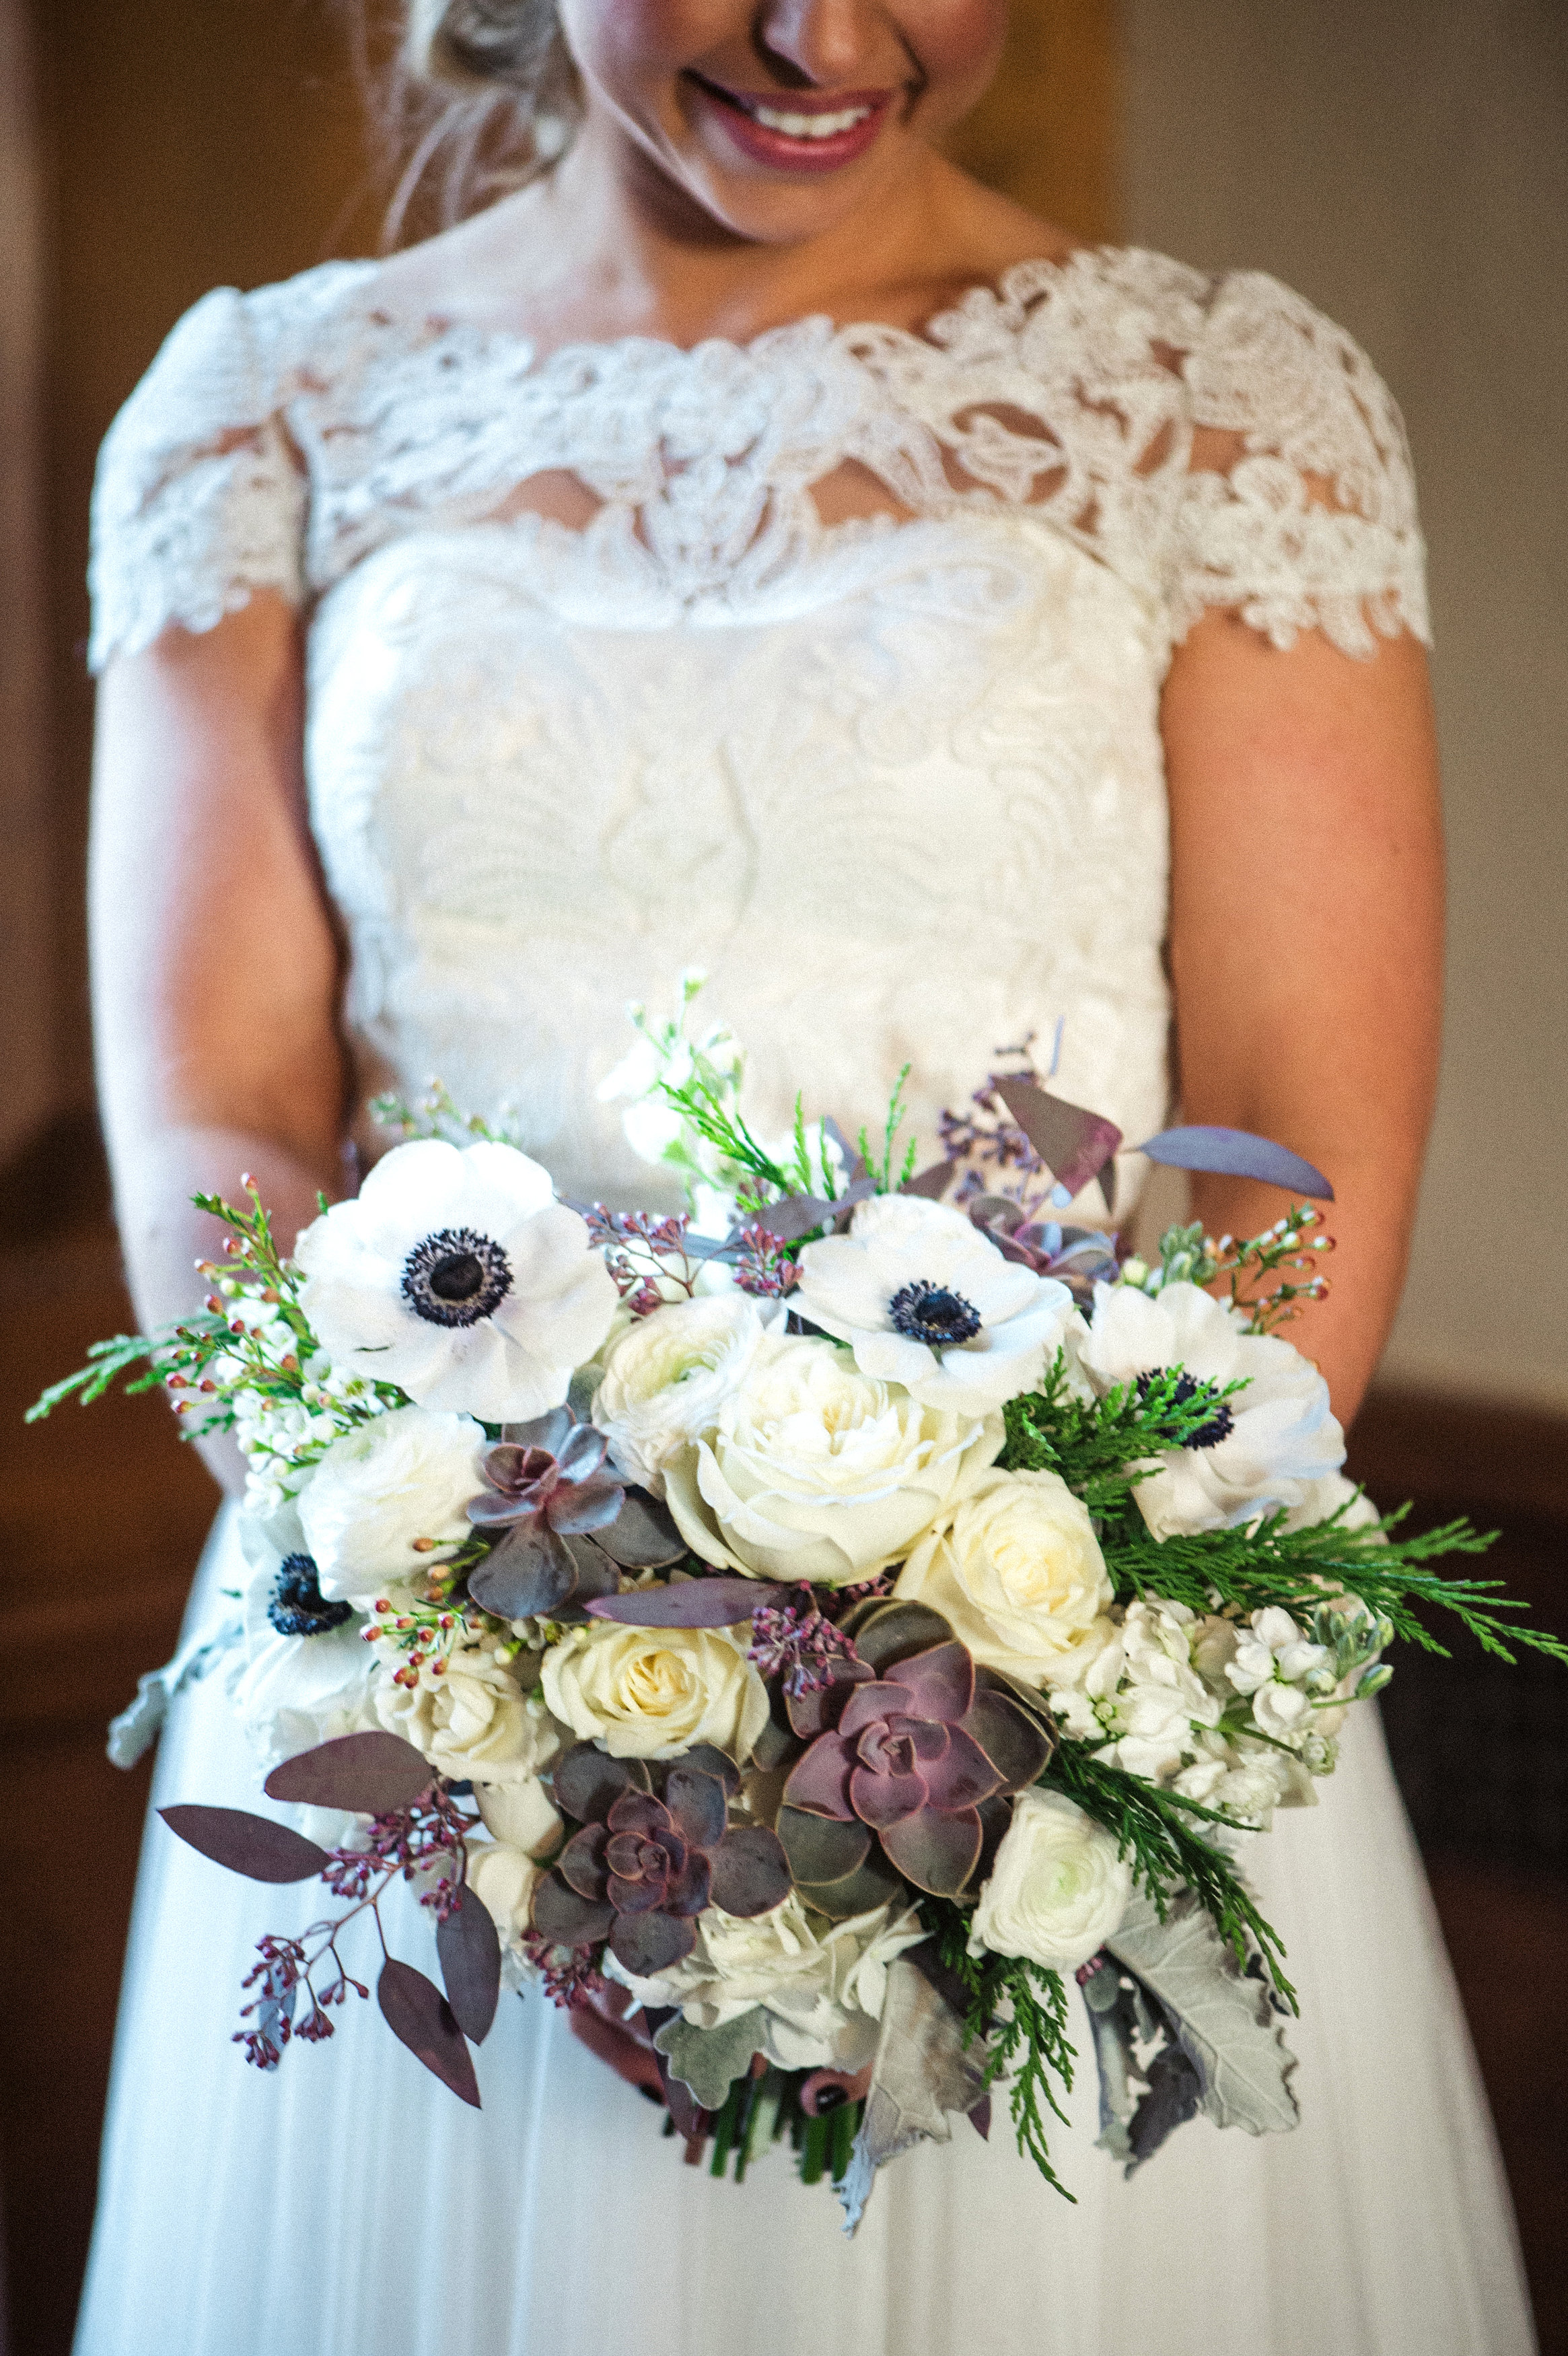 Flowers by Fleur Inc, Photo by Amanda Megan Miller